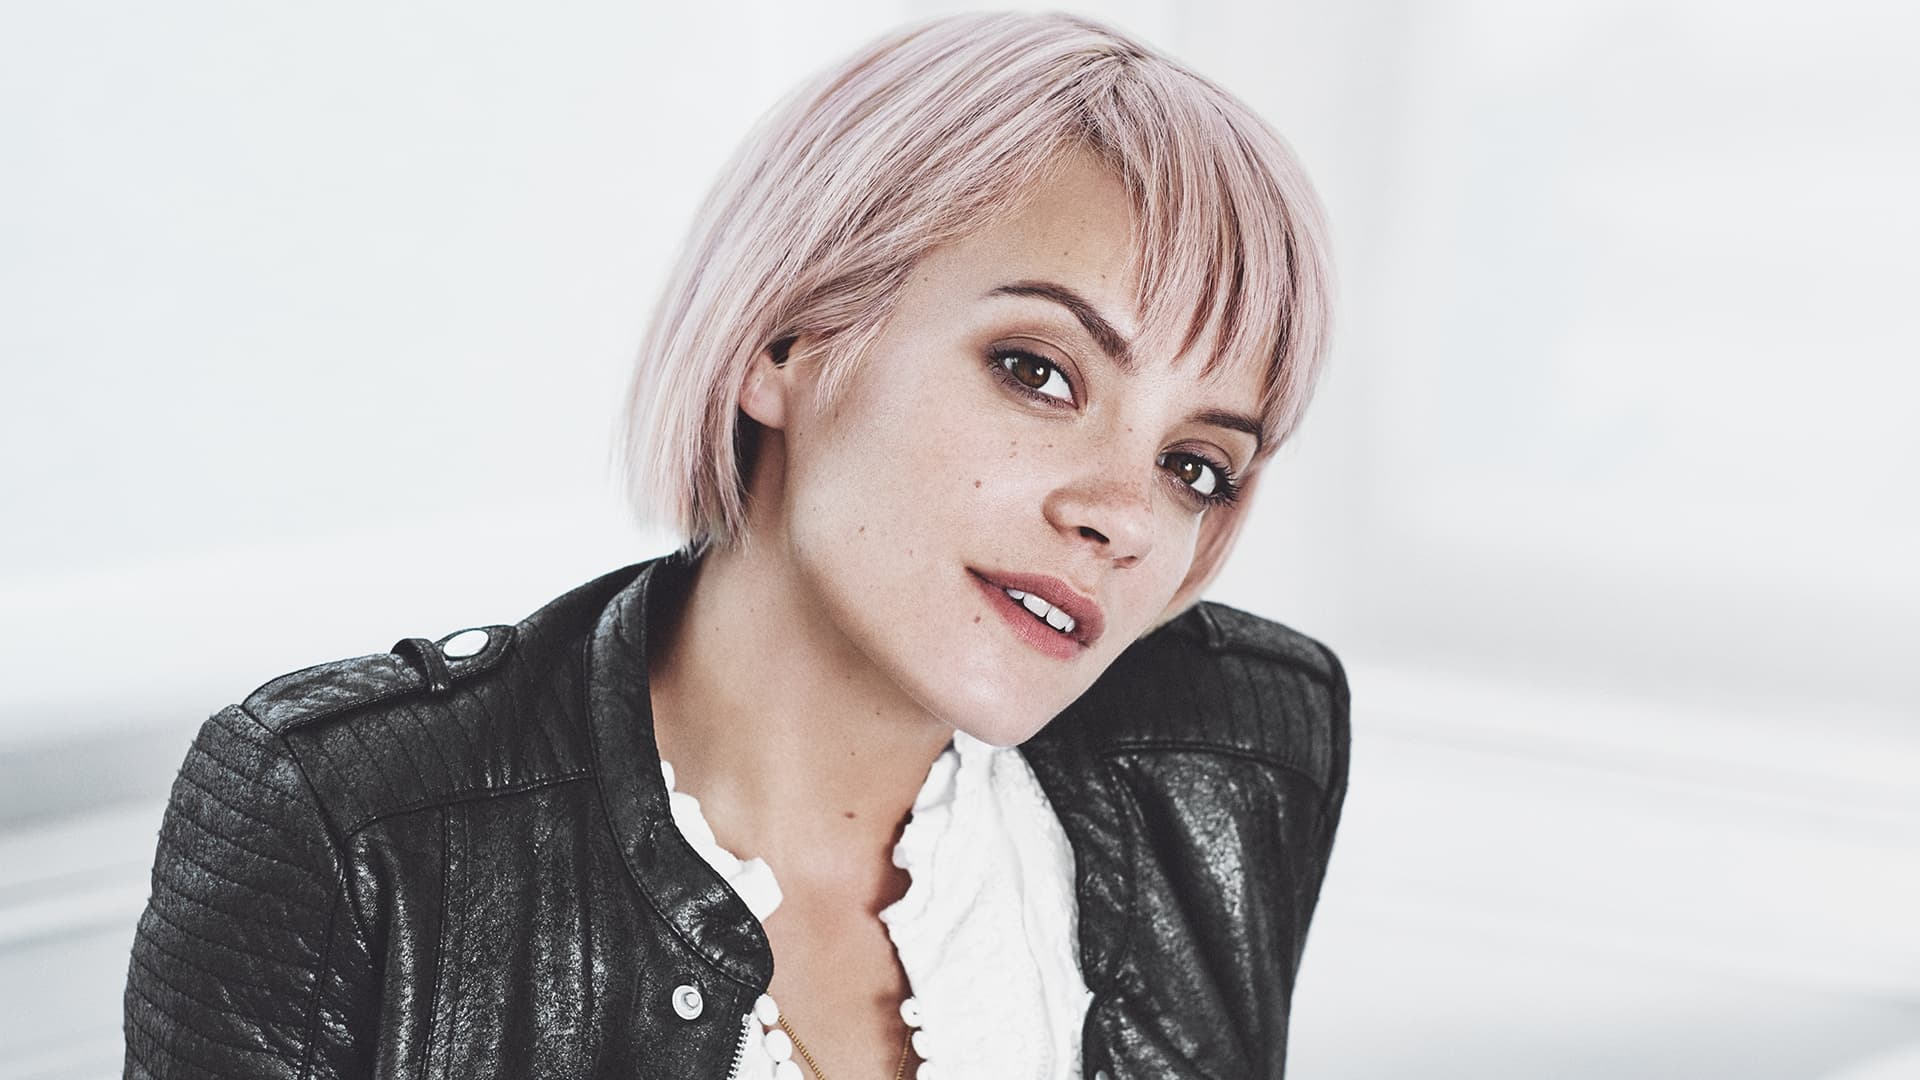 Lily Allen wallpapers HD High Quality Resolution Download